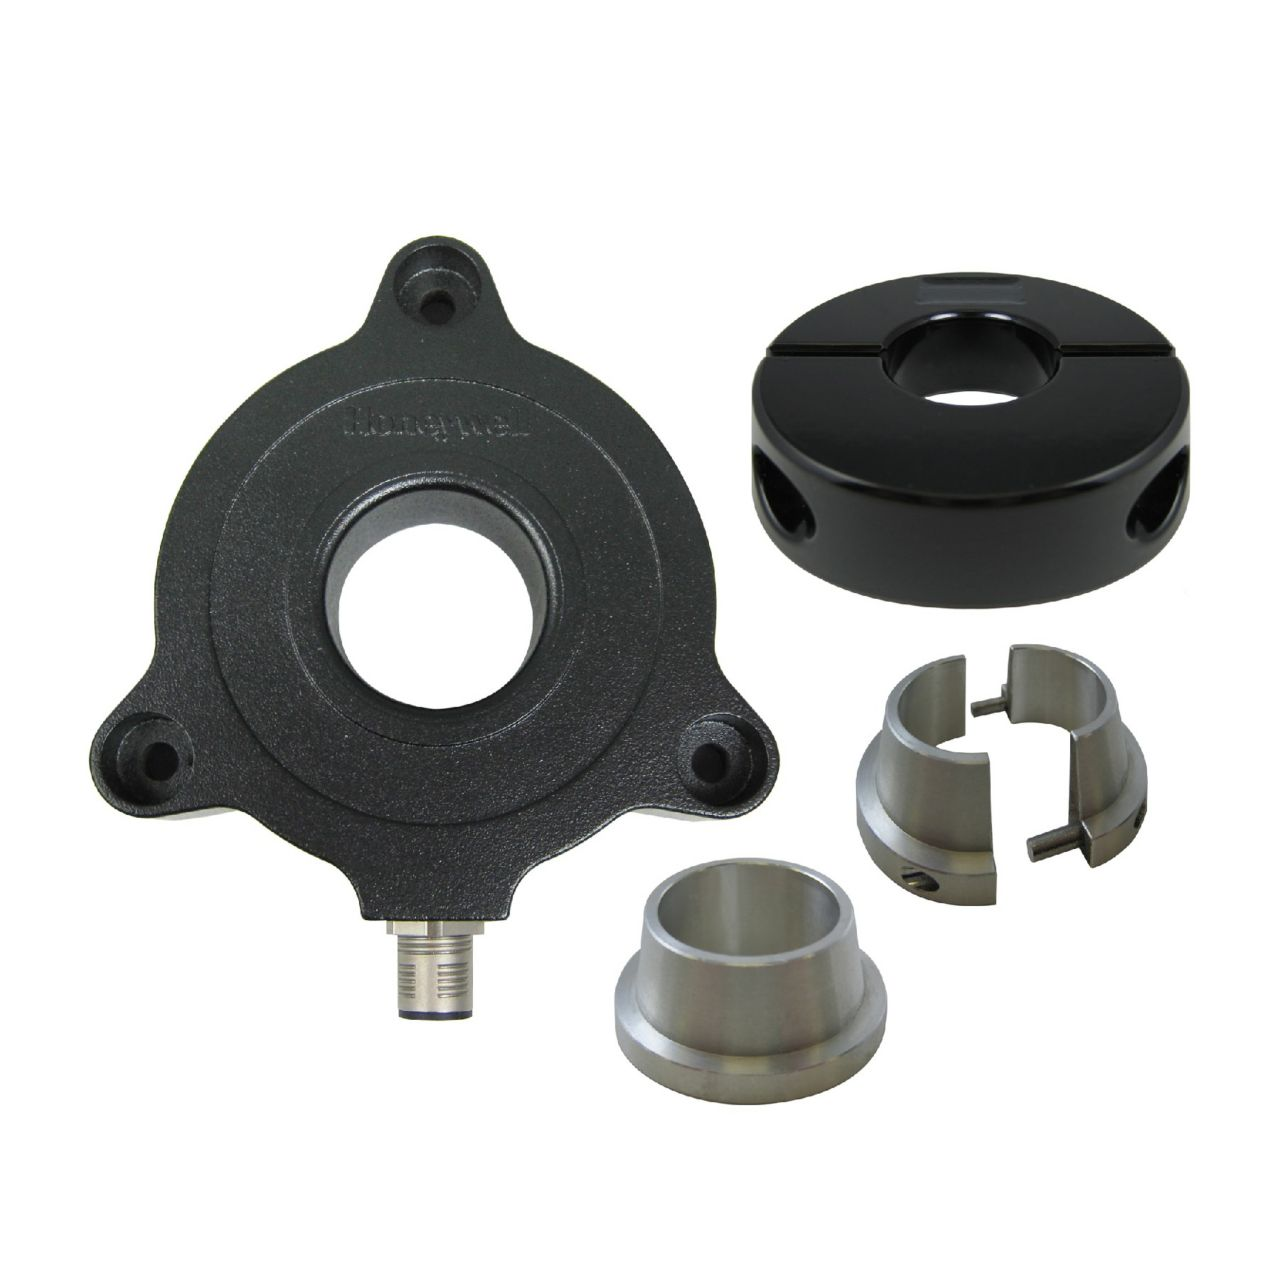 Rotary magnetic position sensors